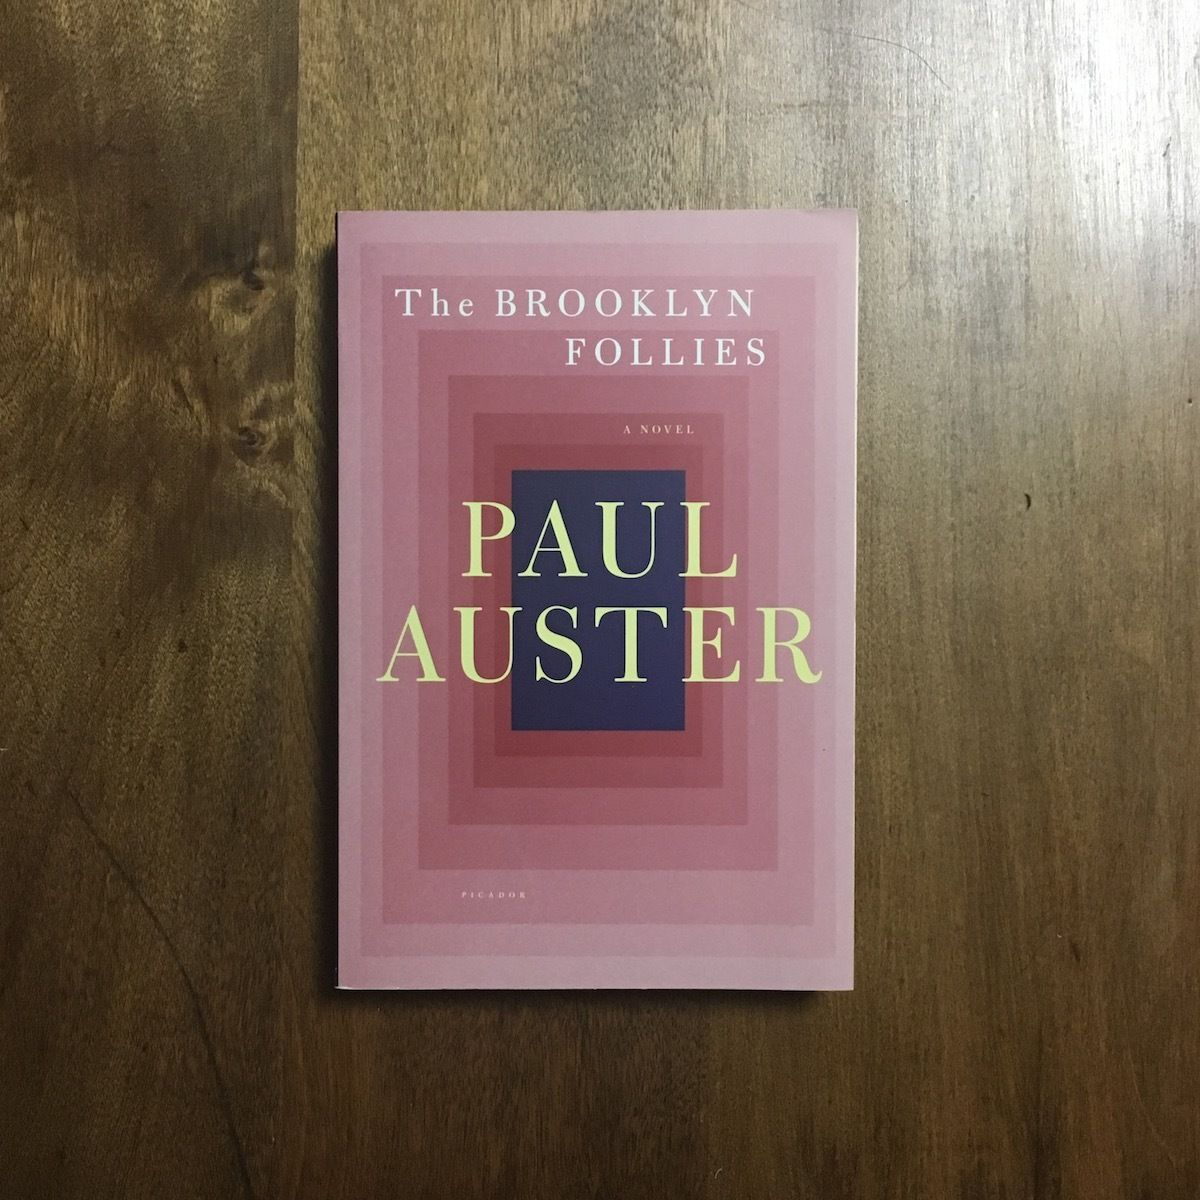 「The BROOKLYN FOLLIES」PAUL AUSTER(ポール・オースター)